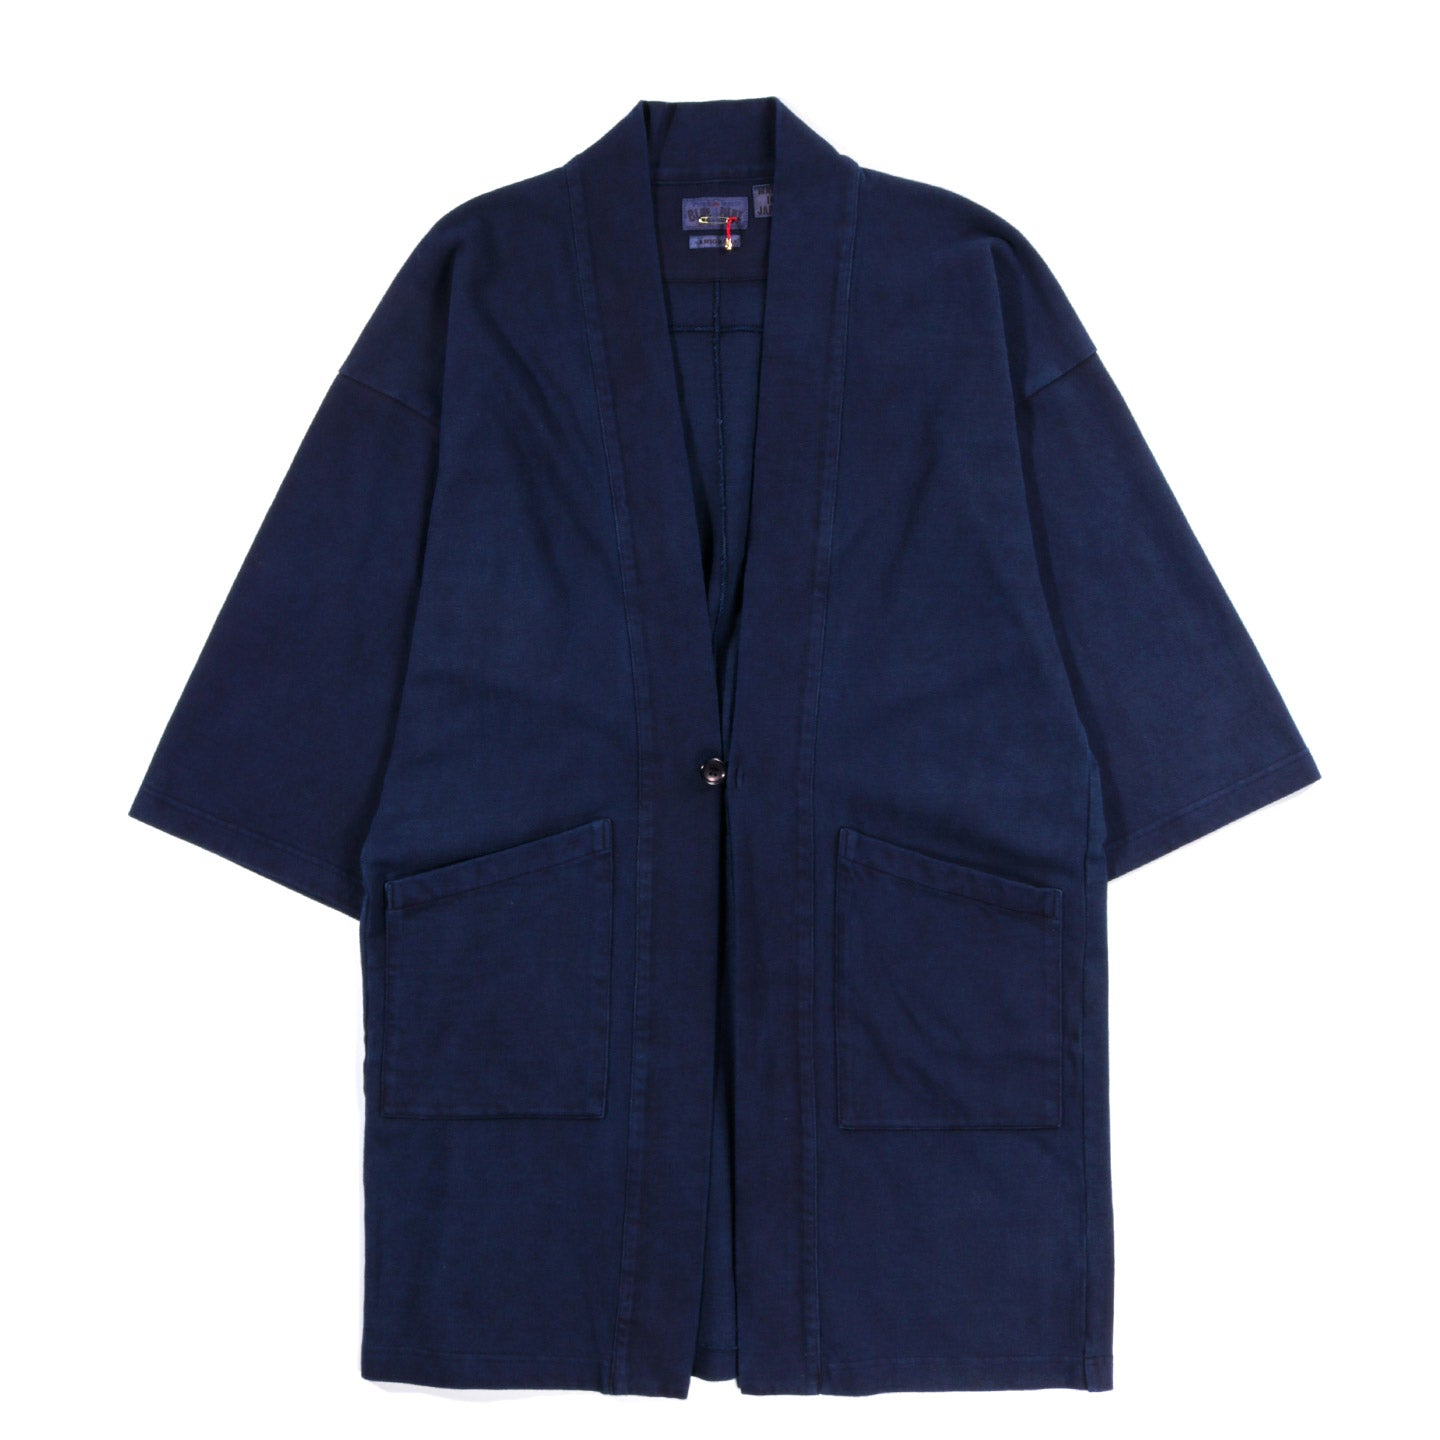 "BLUE BLUE JAPAN FIRM JERSEY HAND DYED ""HANTEN"" JACKET INDIGO"